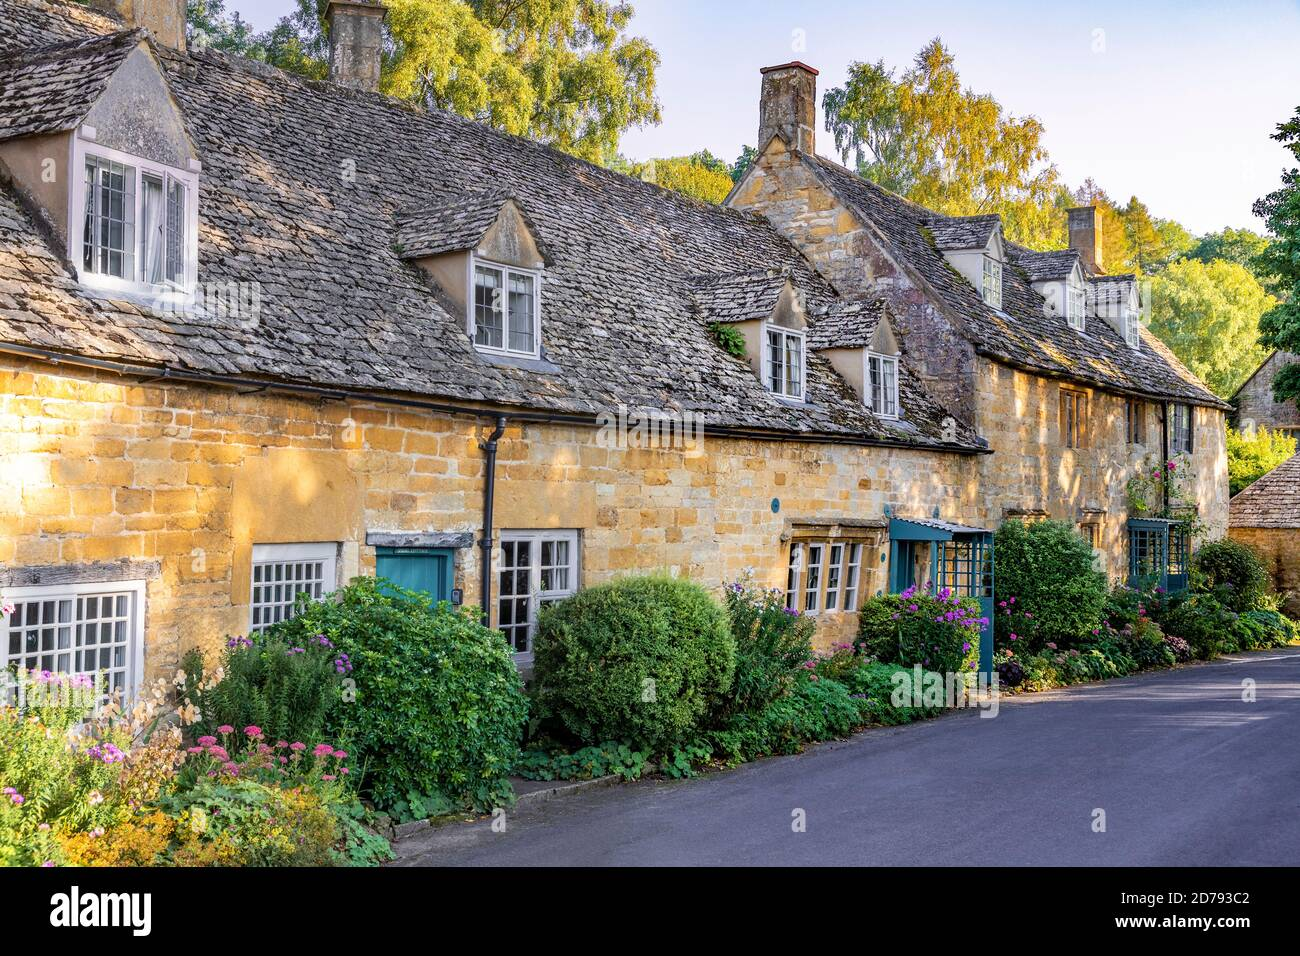 Evening light on traditional stone cottages in the Cotswold village of Snowshill, Gloucestershire UK Stock Photo